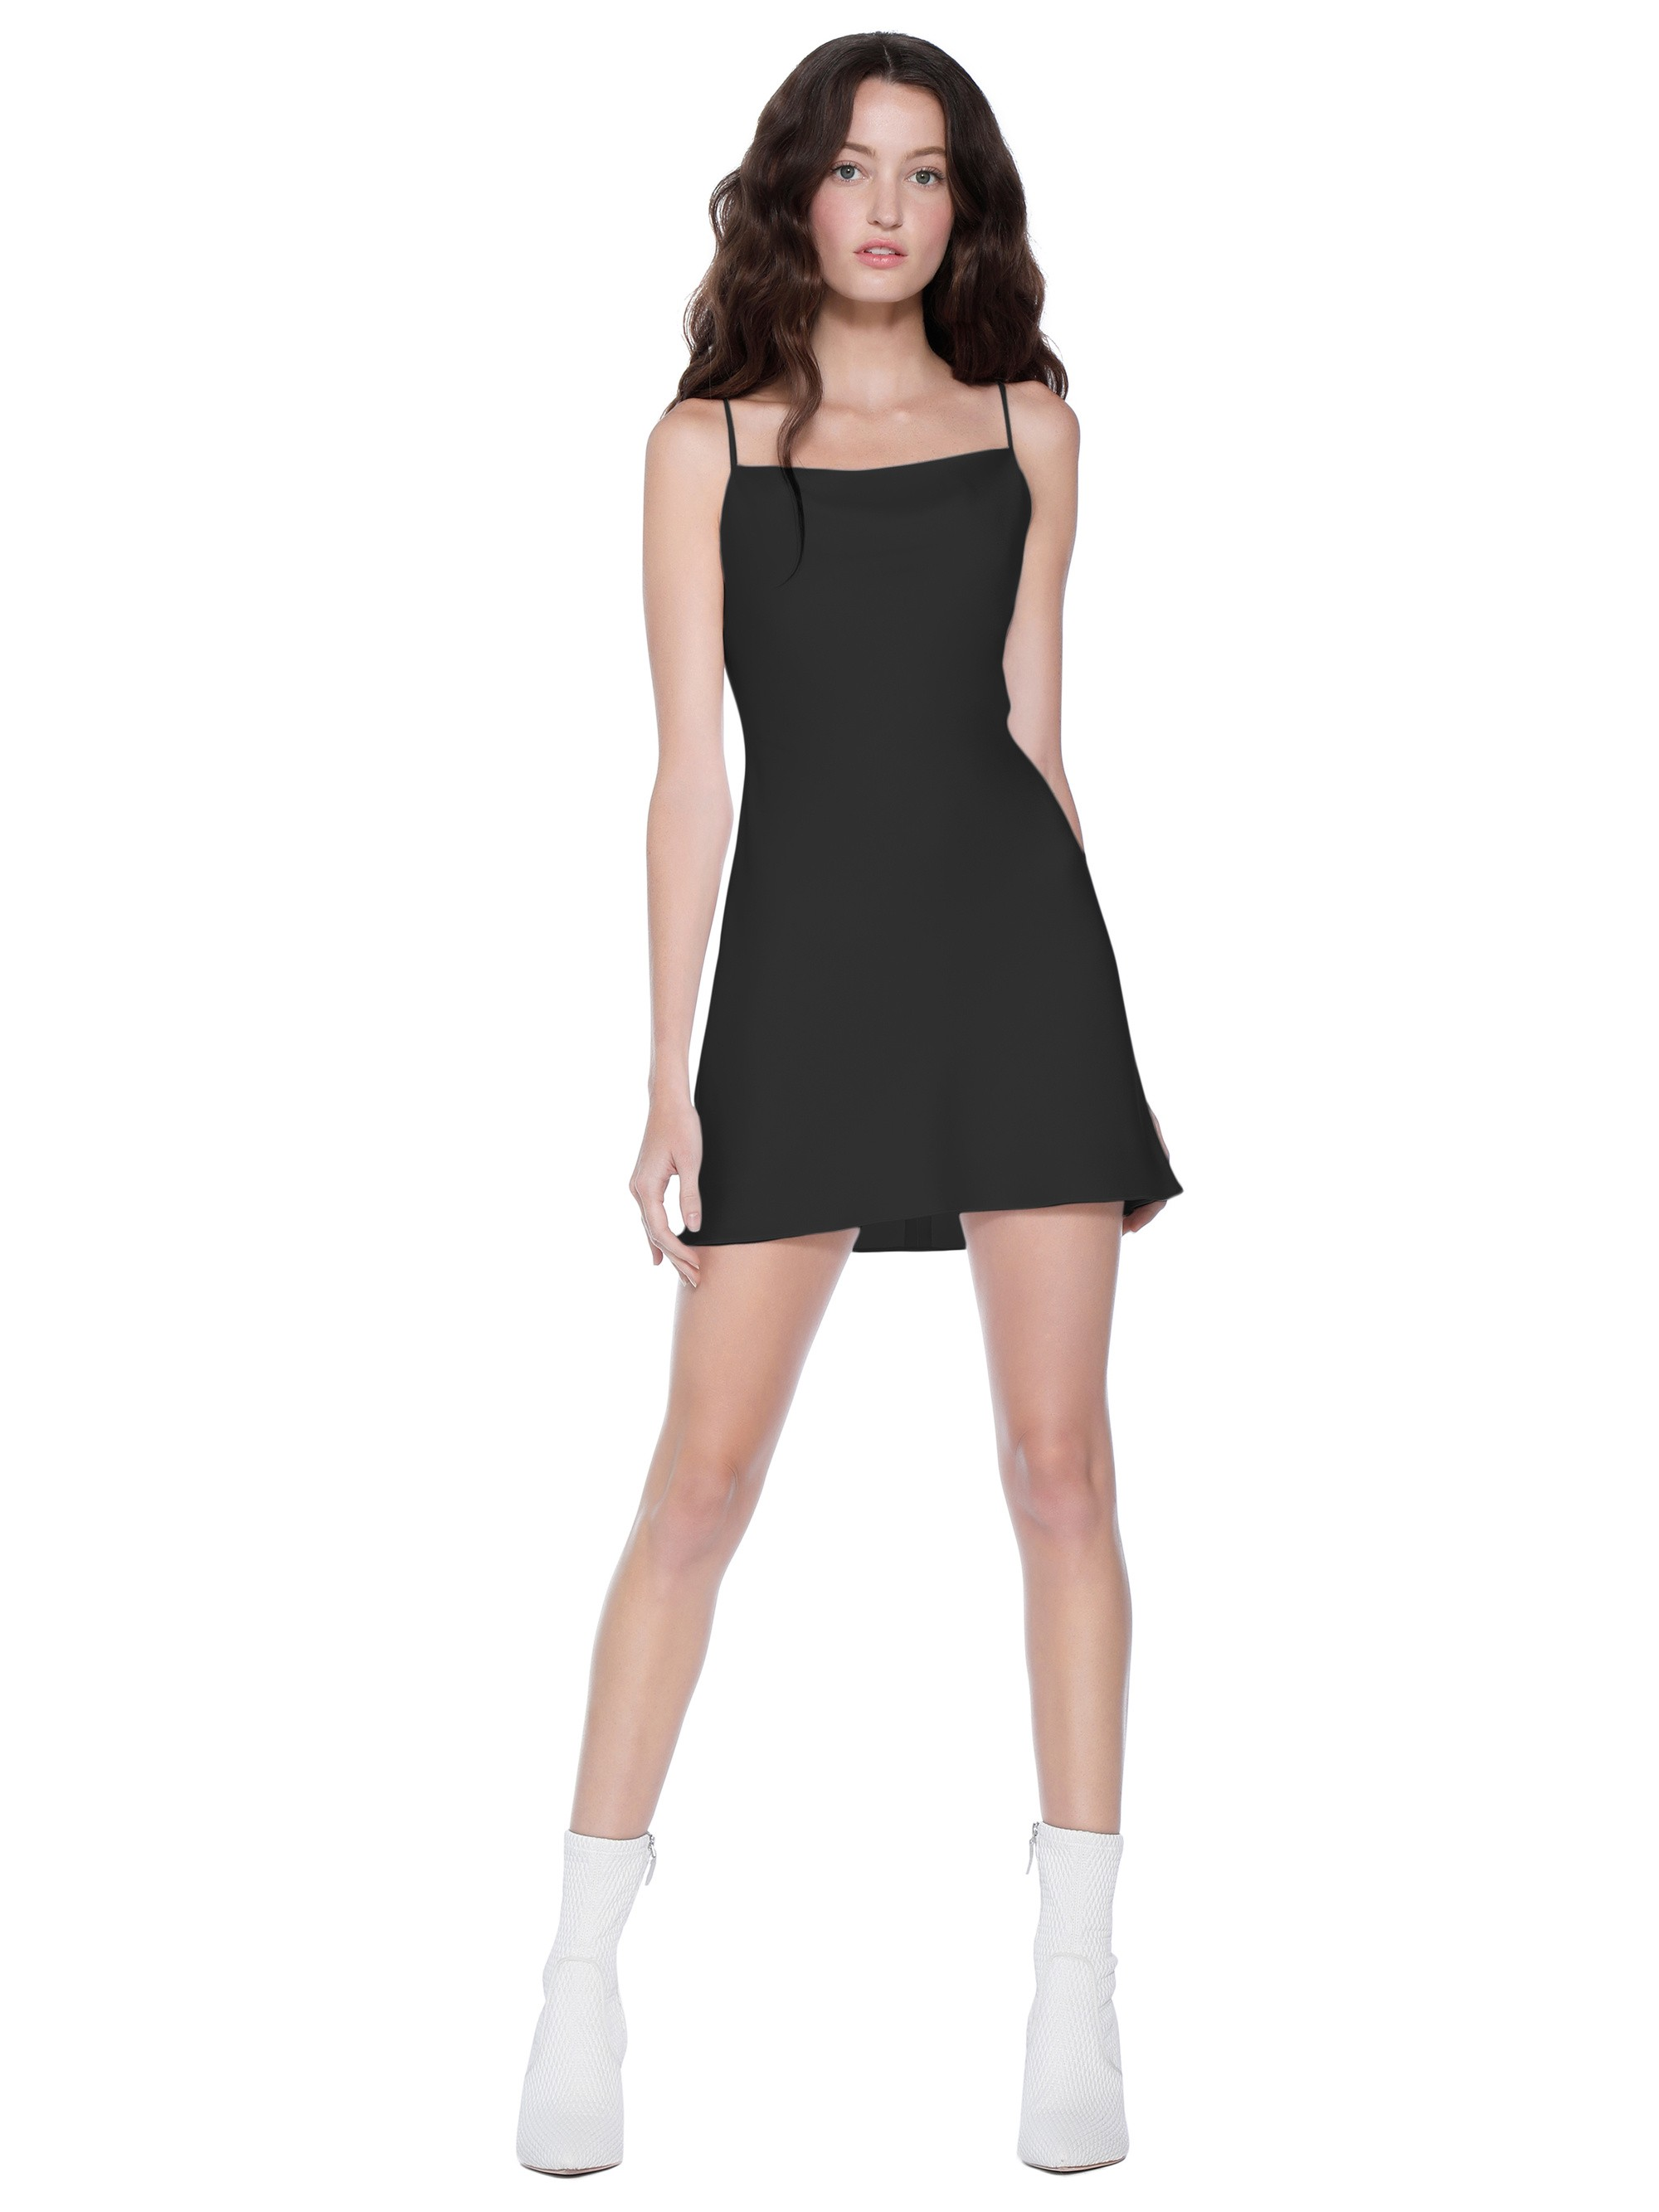 20a6de1e99 Alice + Olivia Harmony Mini Cocktail Dress - Black 2